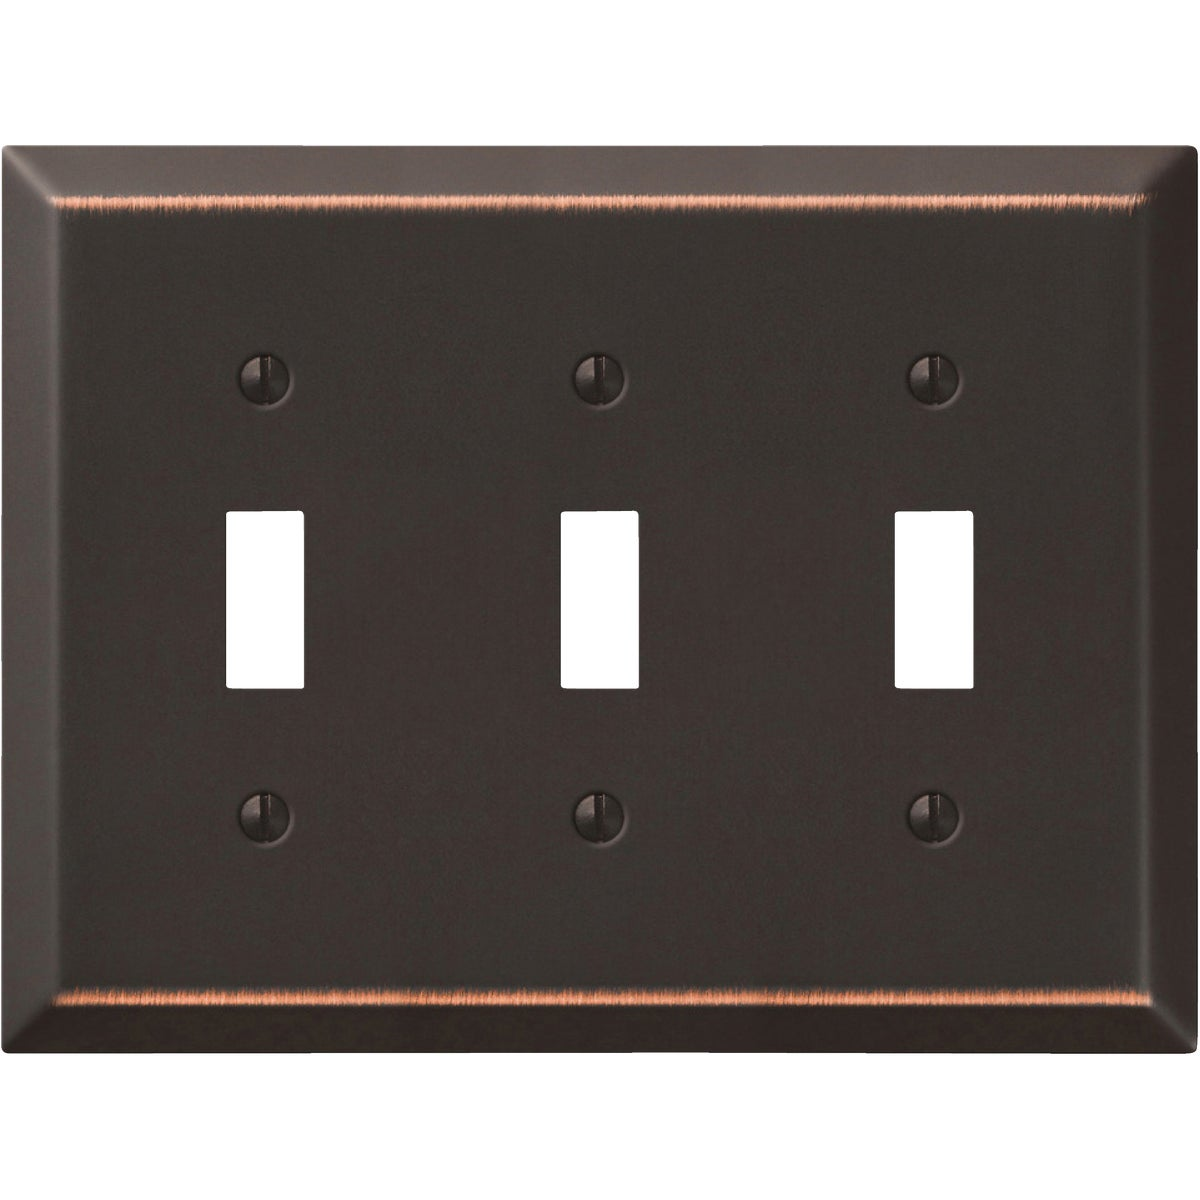 3TGL ABRZ WALLPLATE - 9AZ103 by Jackson Deerfield Mf